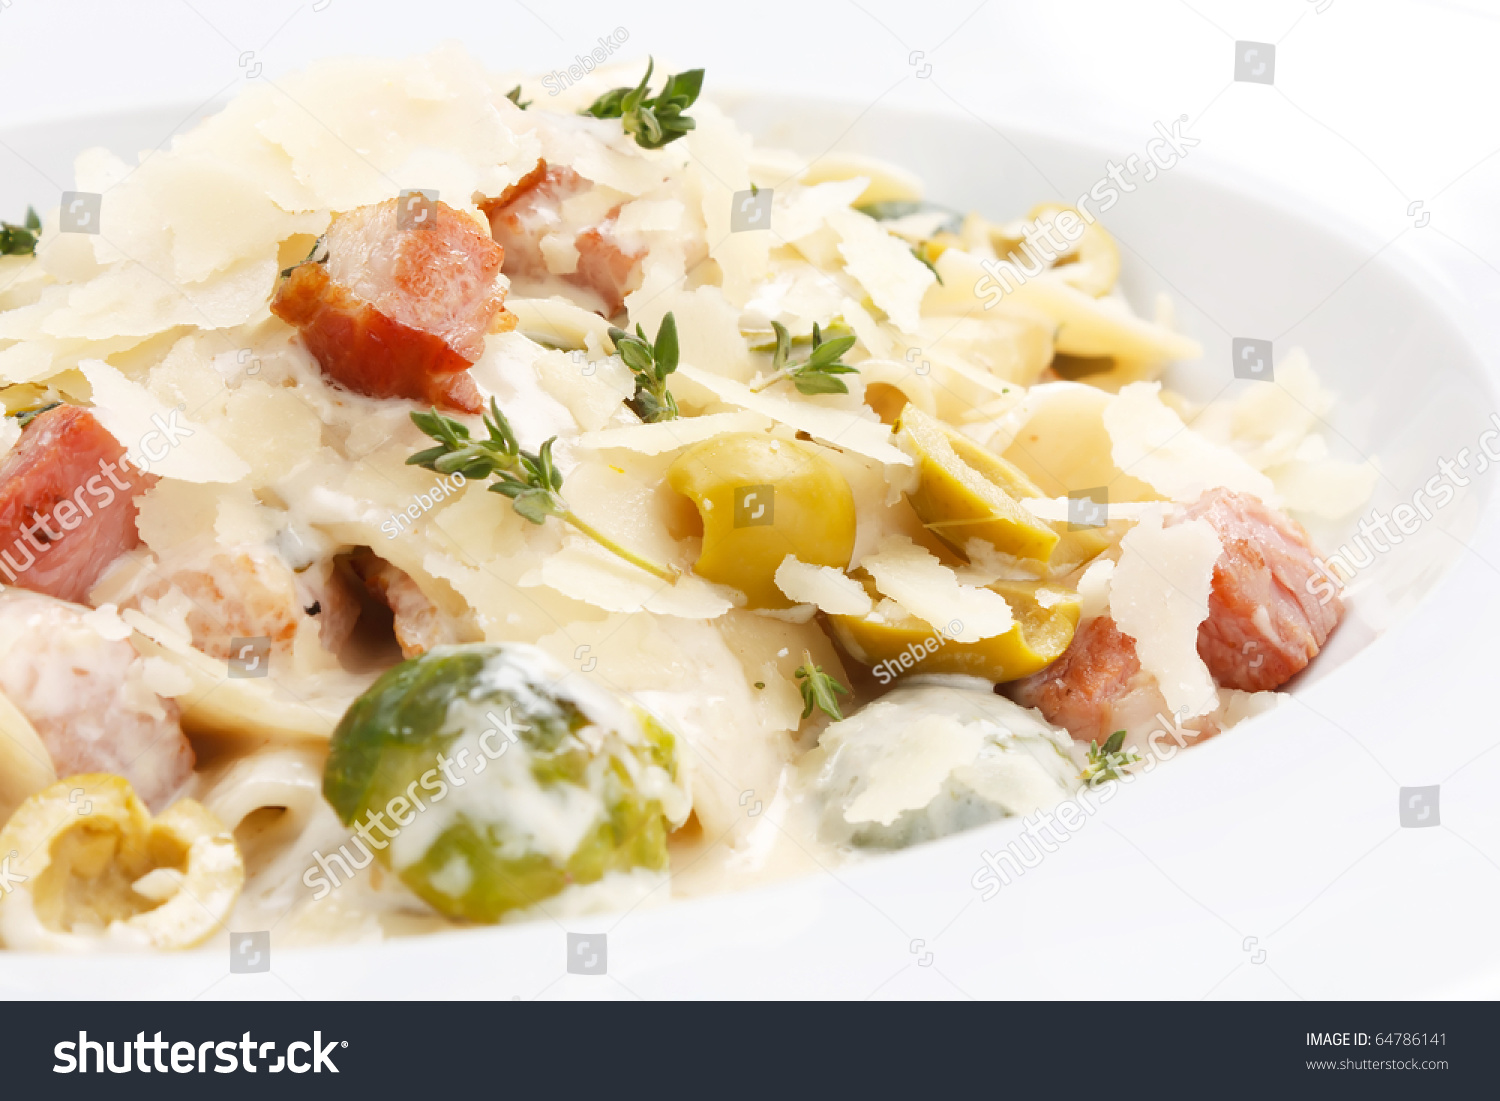 Pasta With Bacon And Vegetables Stock Photo 64786141 : Shutterstock